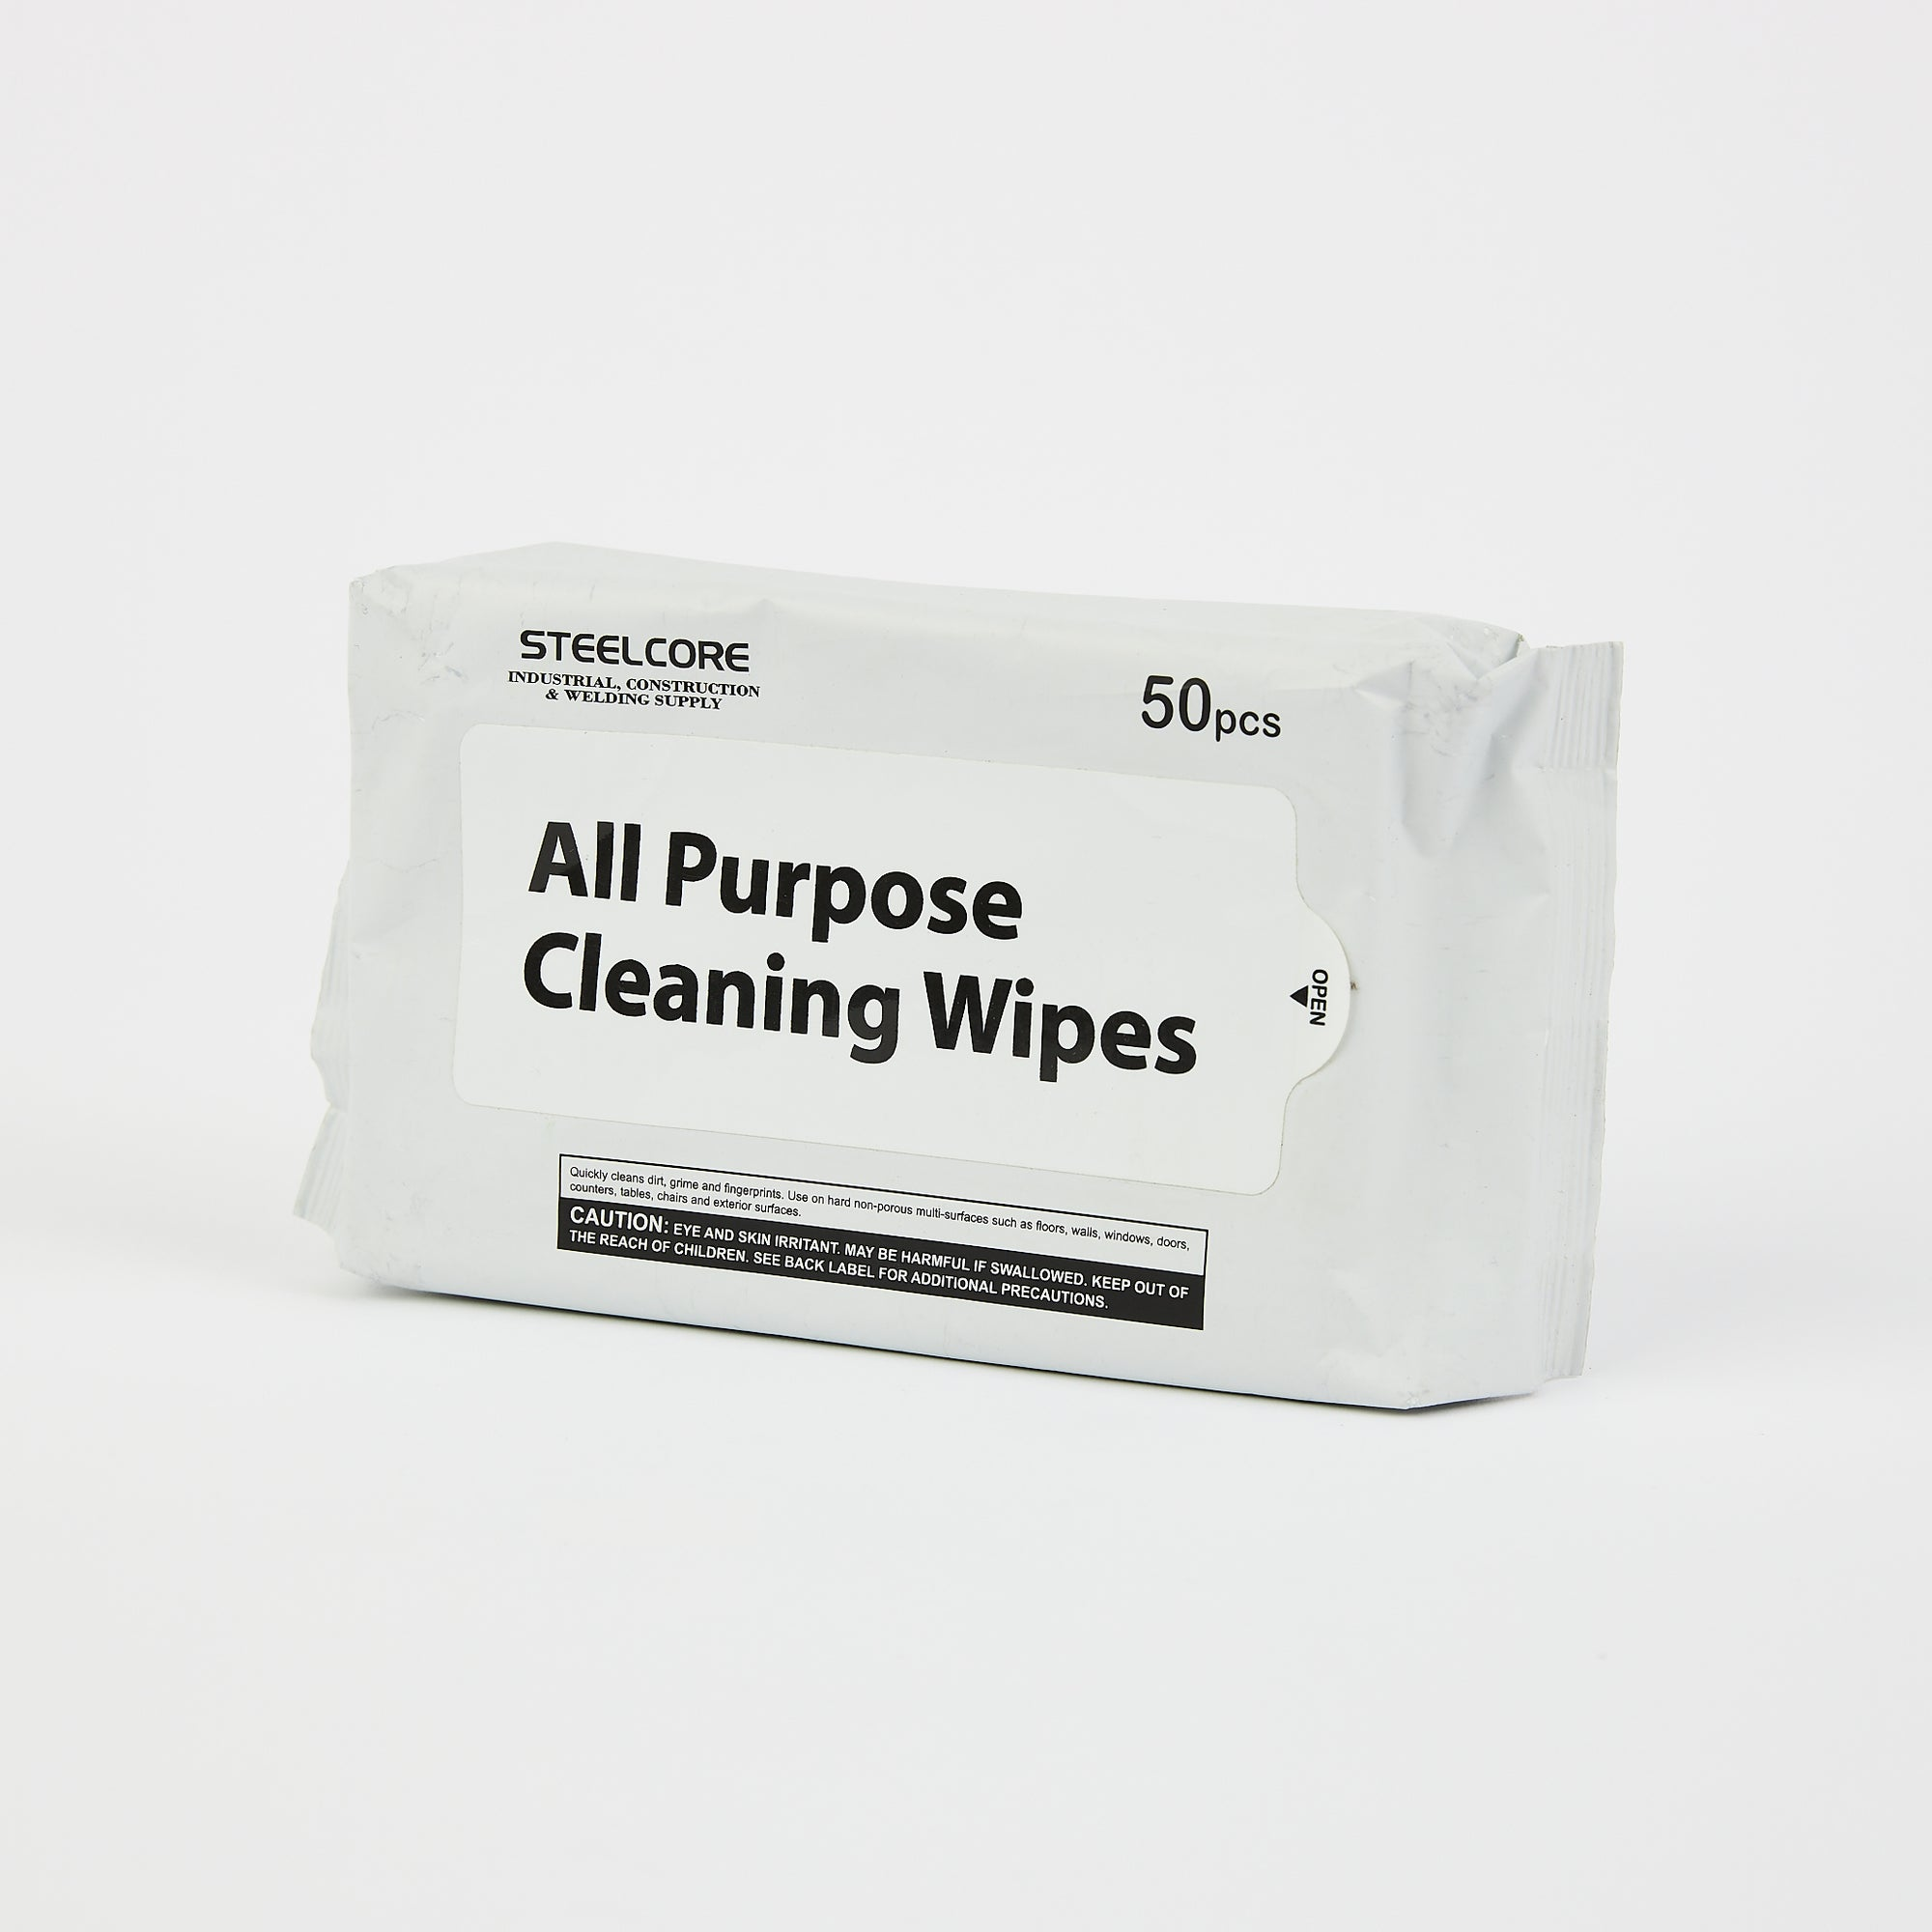 All Purpose Cleaning Wipes 42 Packs of 50/Case ($1.90 per pack)